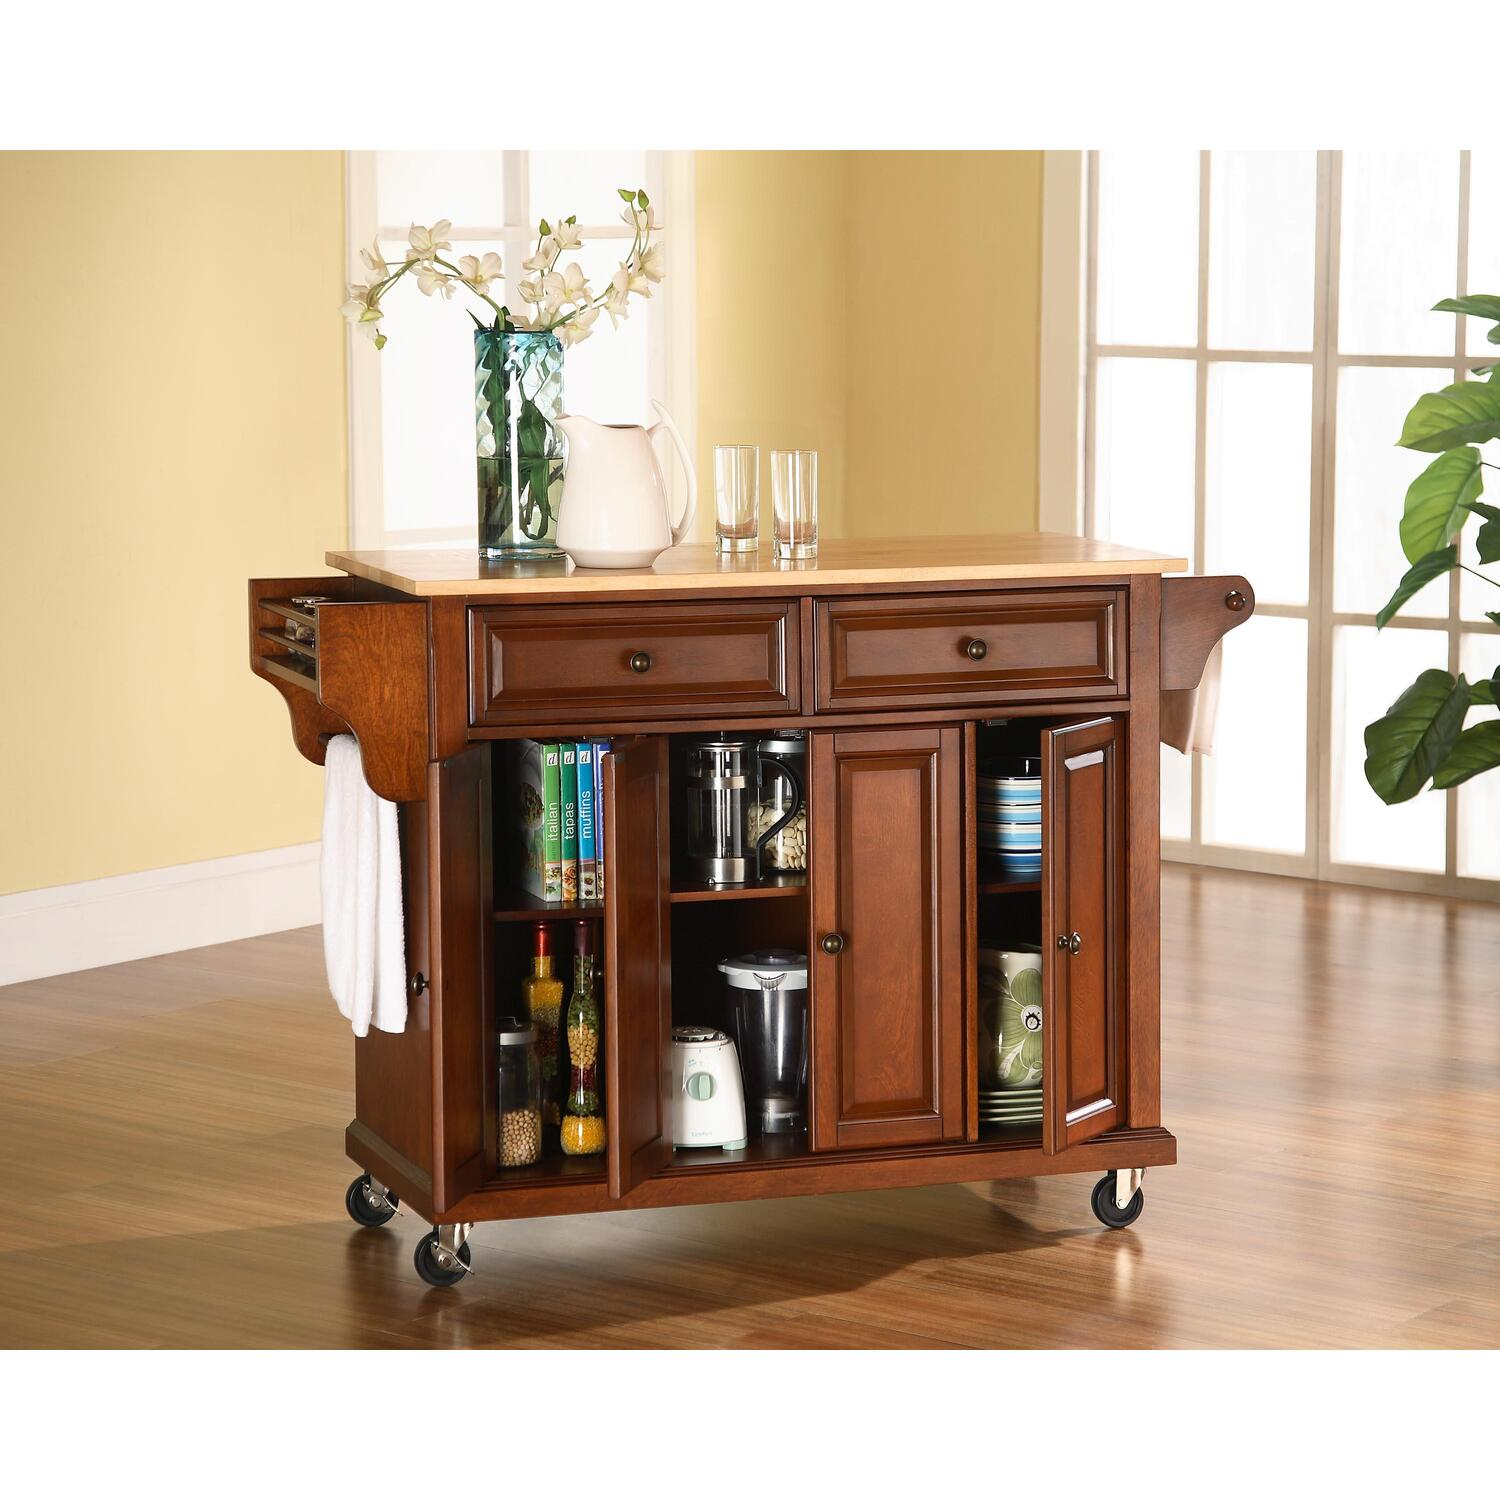 crosley kitchen island colors for kitchens solid black granite top cart from 317 88 to 534 99 ojcommerce